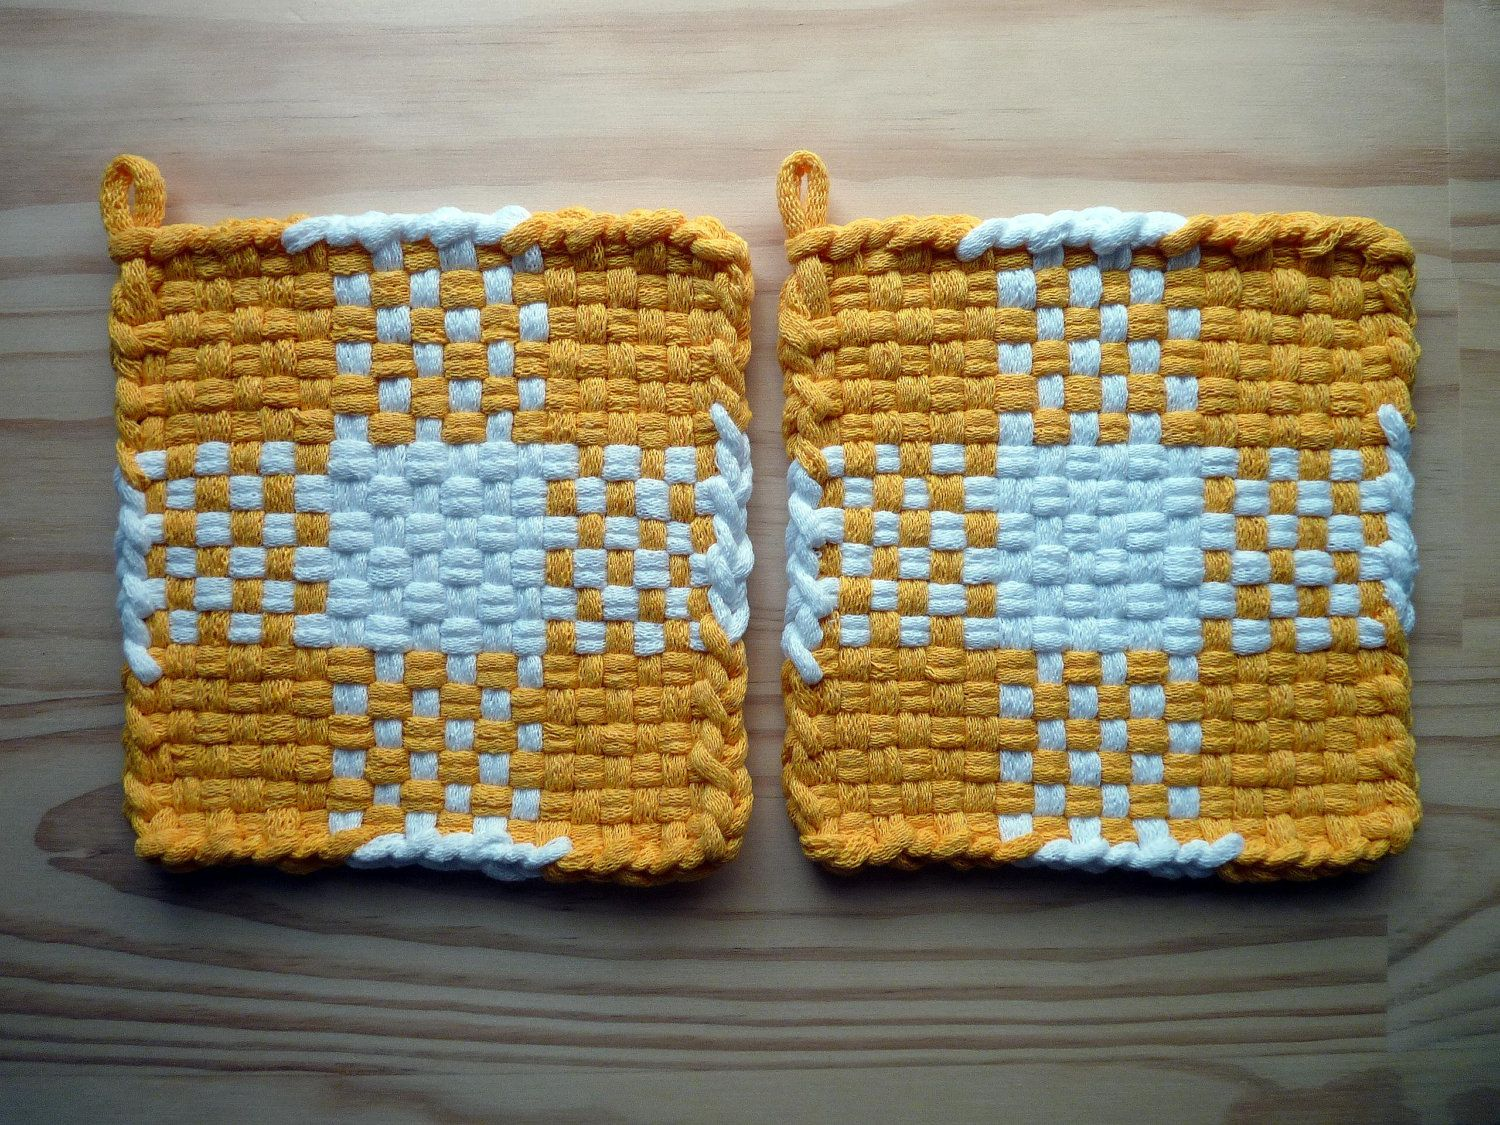 White pot holders for crafts - Blue And Yellow Check Color Block Pattern Woven Cotton Loop Loom Potholder Vintage Ikea Colors Modern Kitchen Farmhouse Style